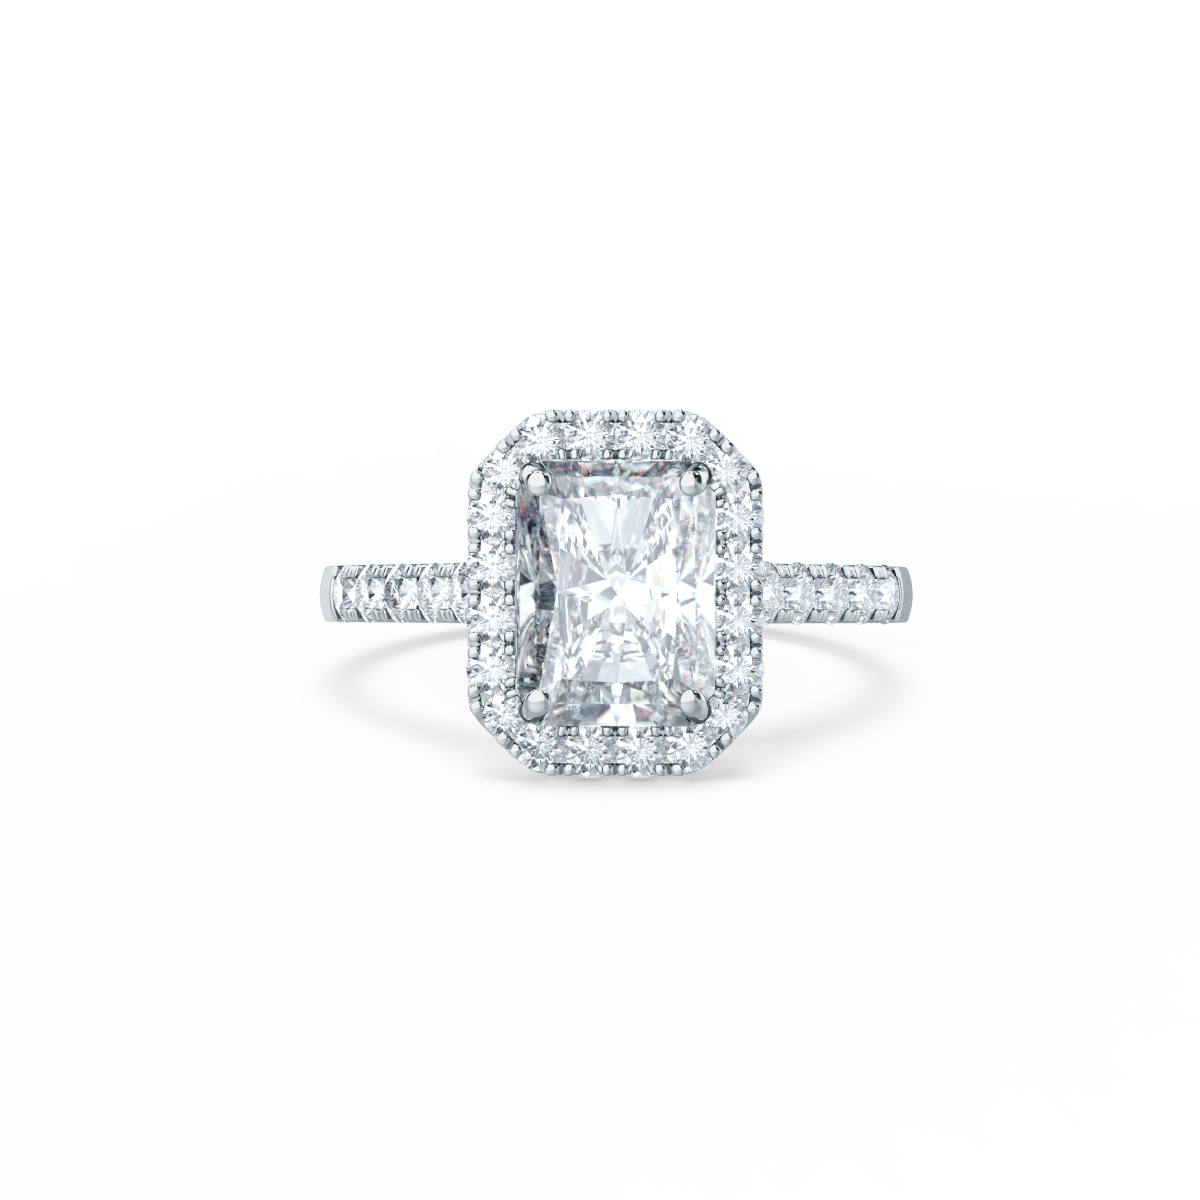 Introducing the new esme radiant cut halo engagement ring available